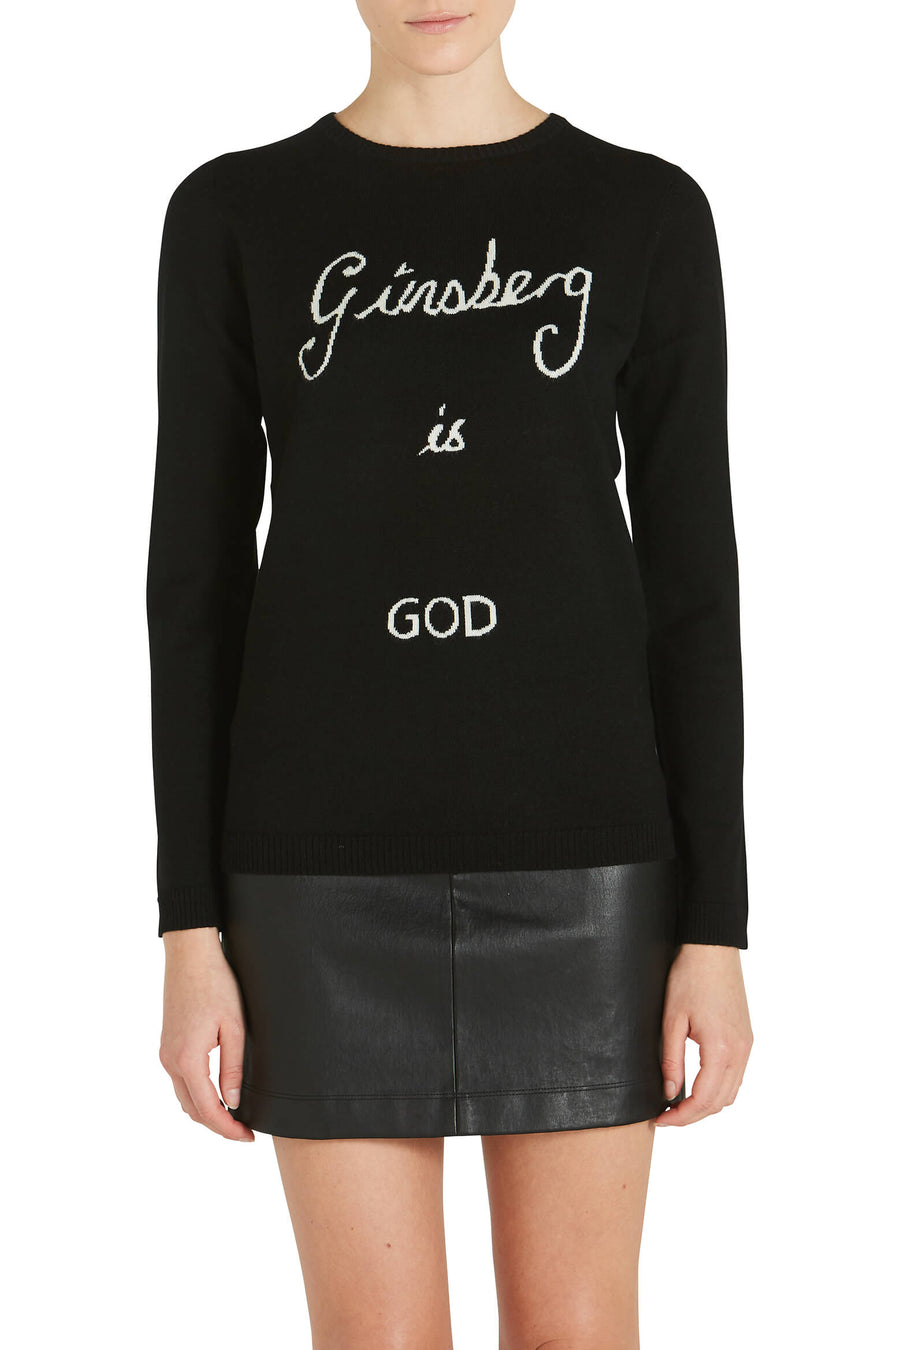 Bella Freud Ginsberg is God from The New Trend